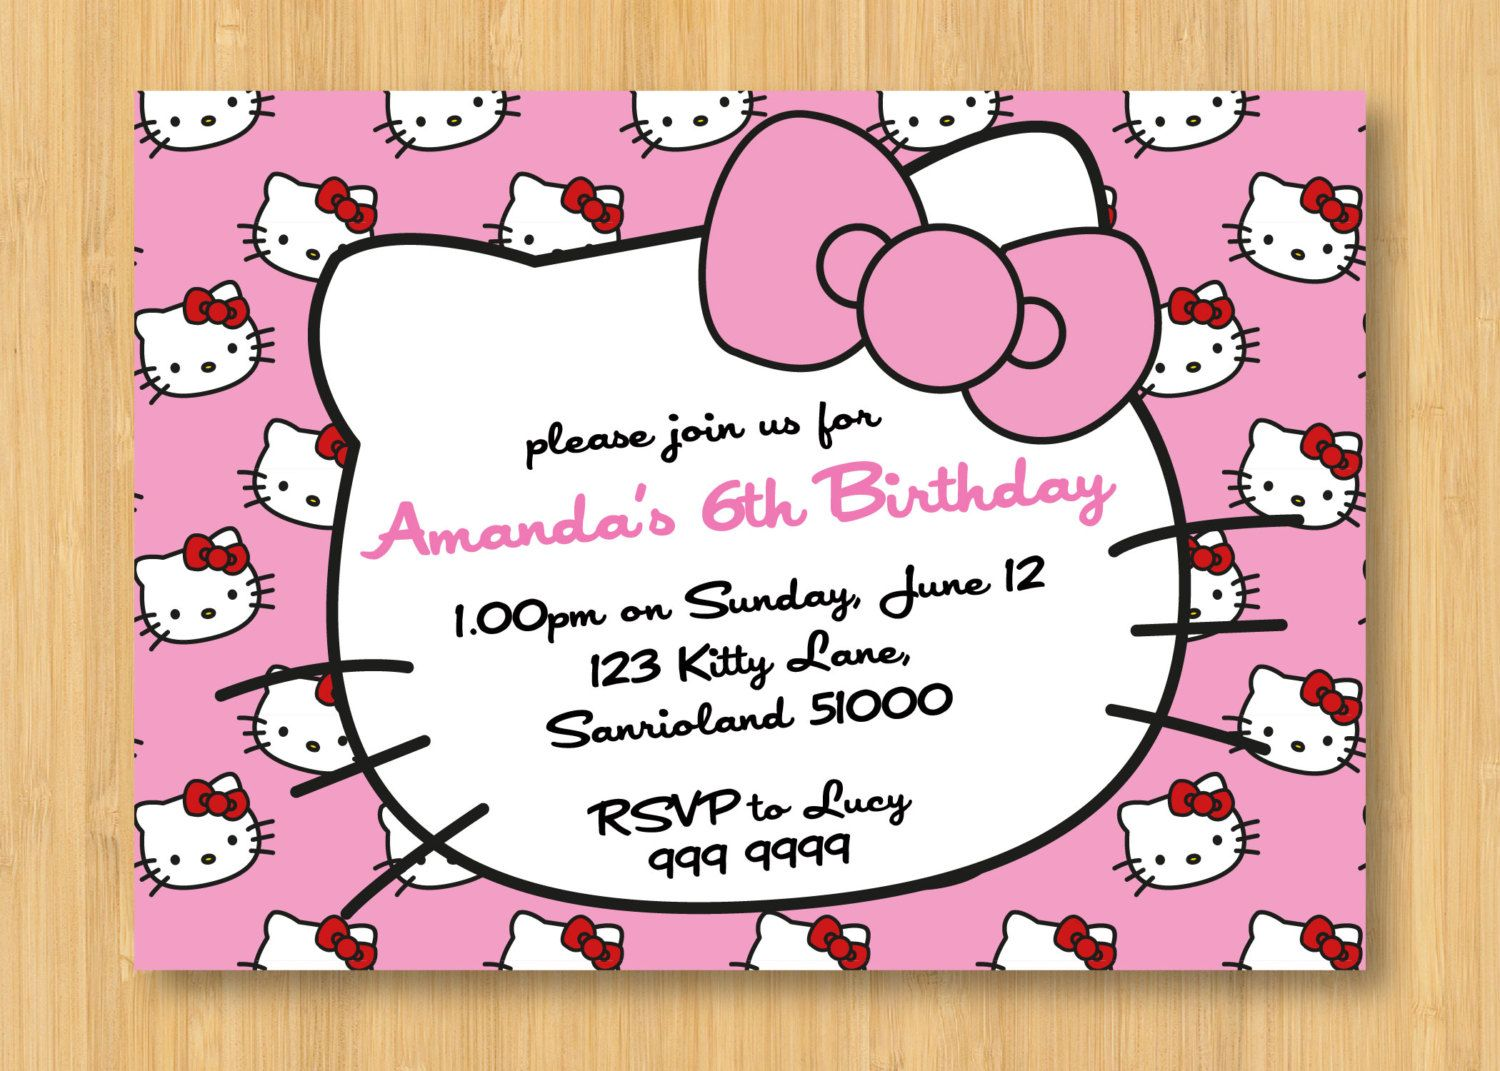 Hello kitty printable birthday party invitation by littleforests image detail for hello kitty printable birthday party invitation personalized 5 stopboris Image collections